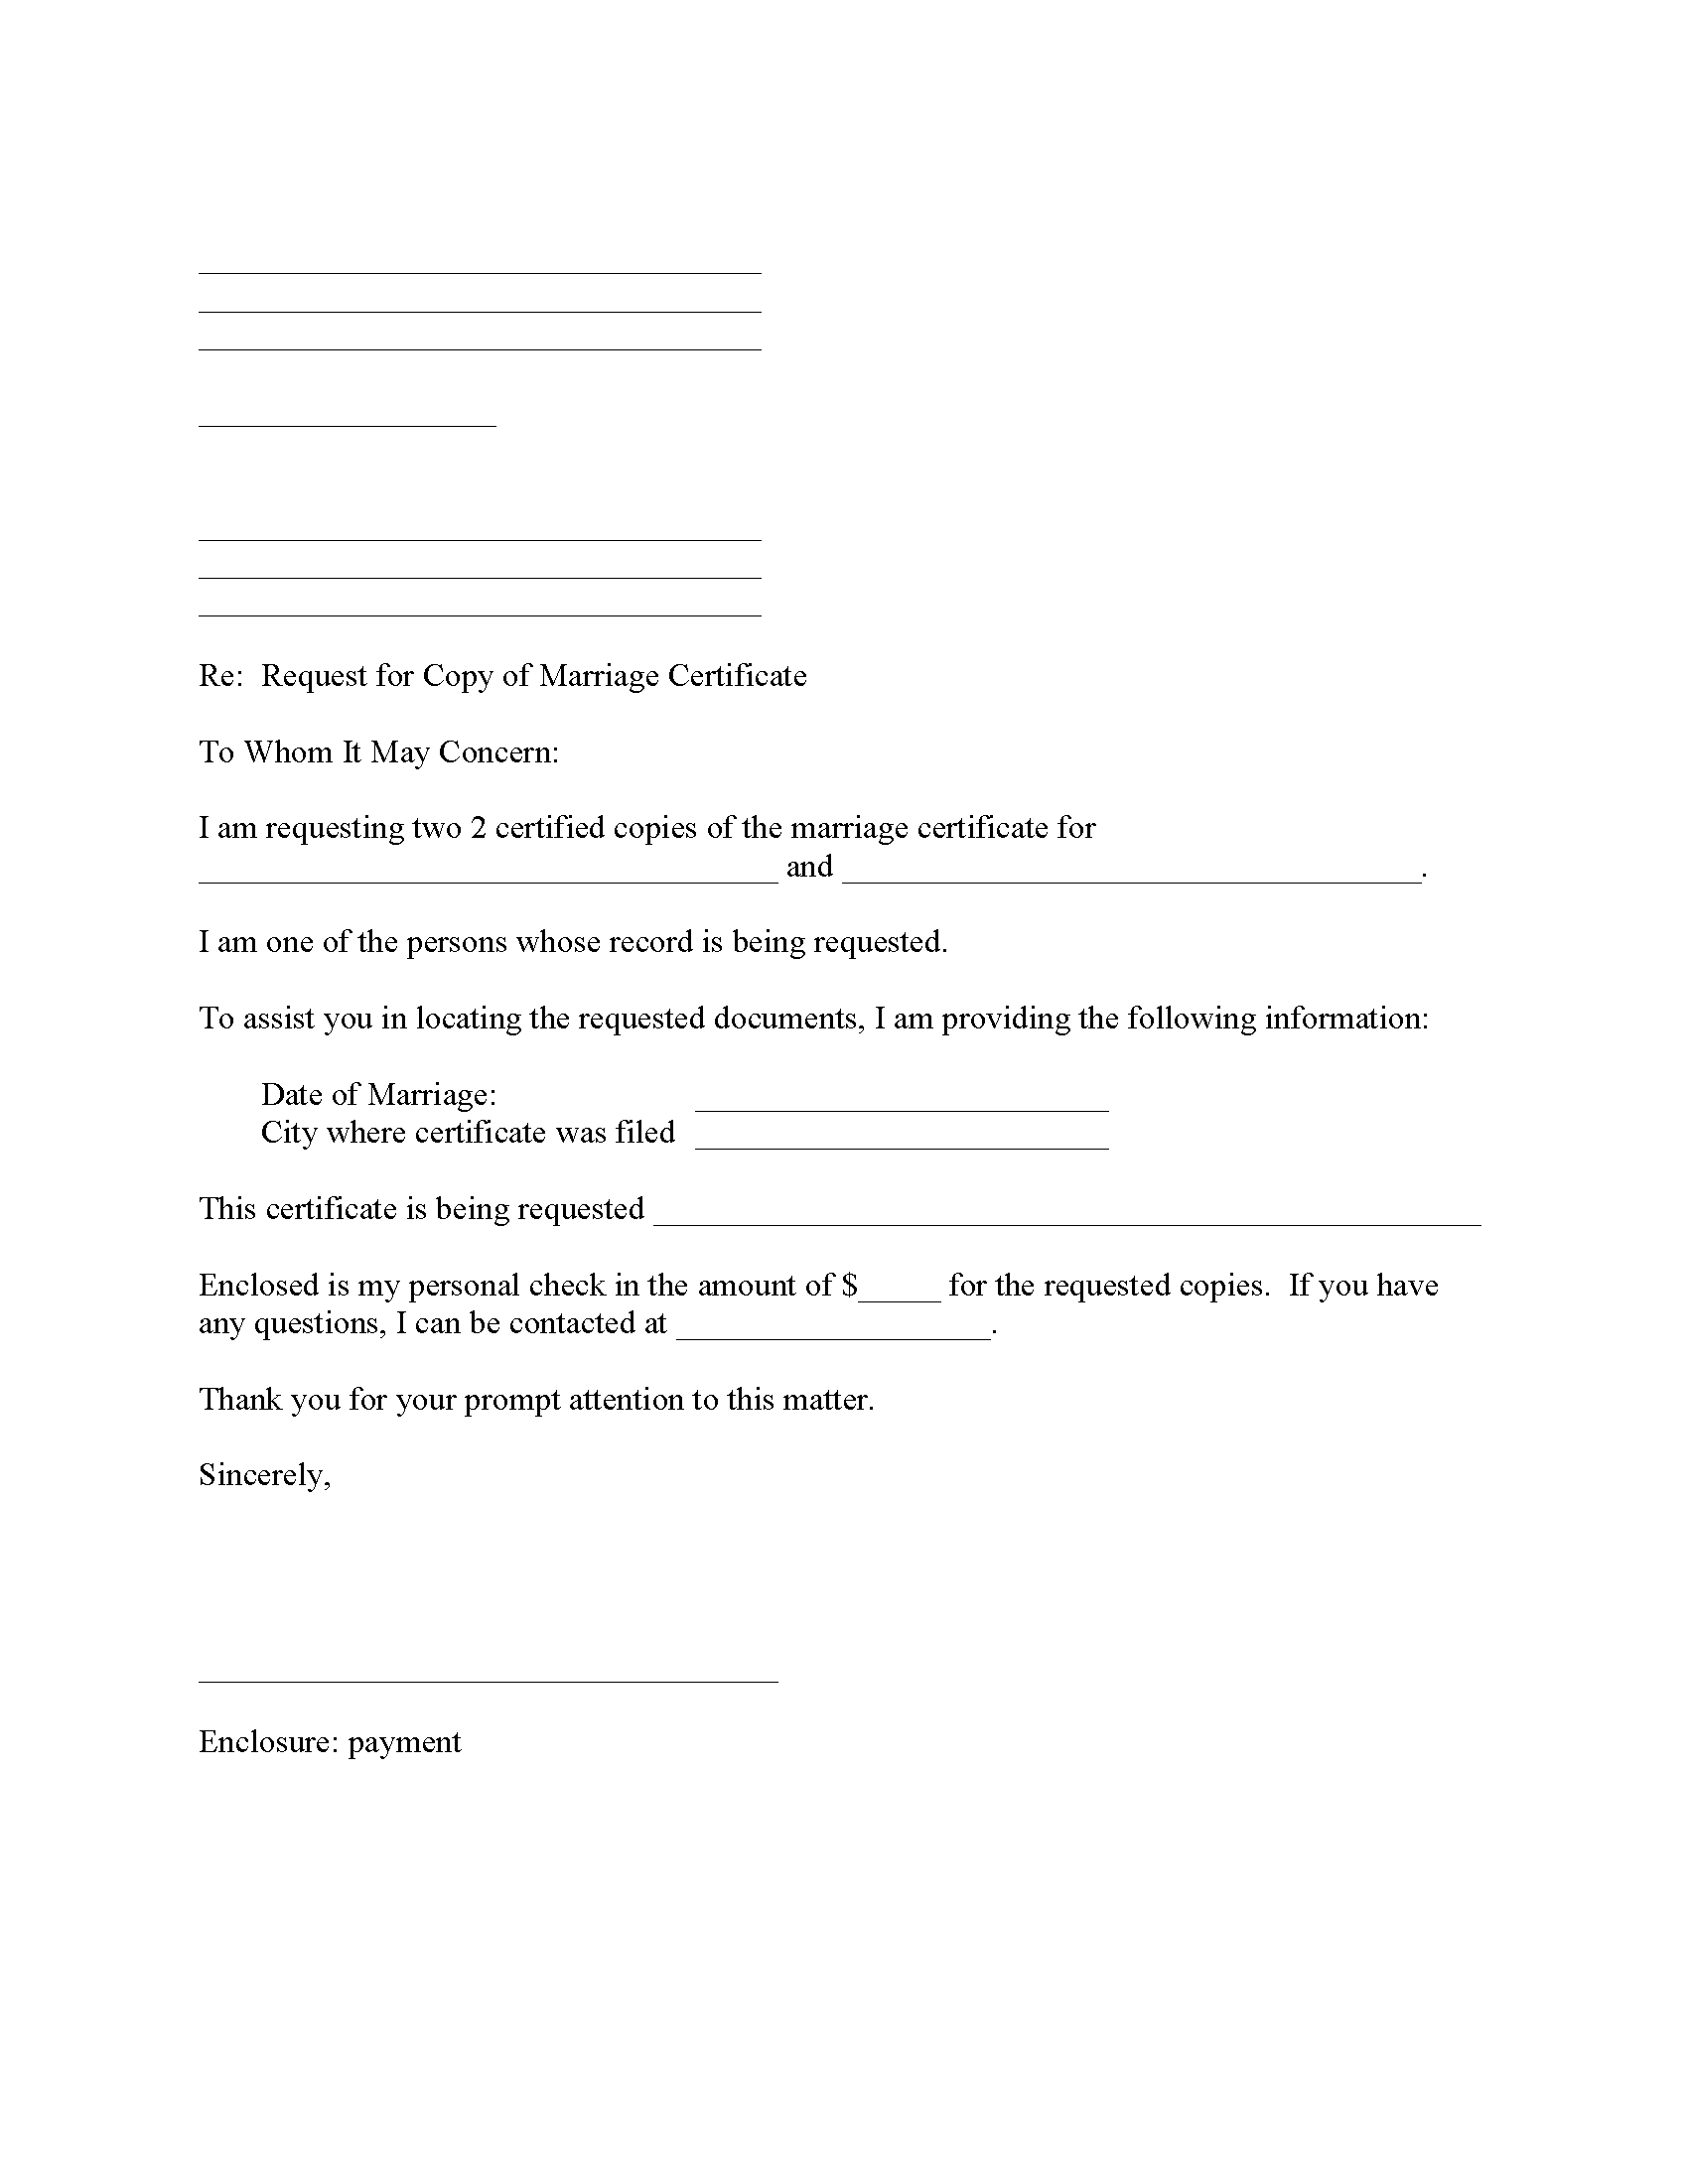 Request Copy of Marriage License